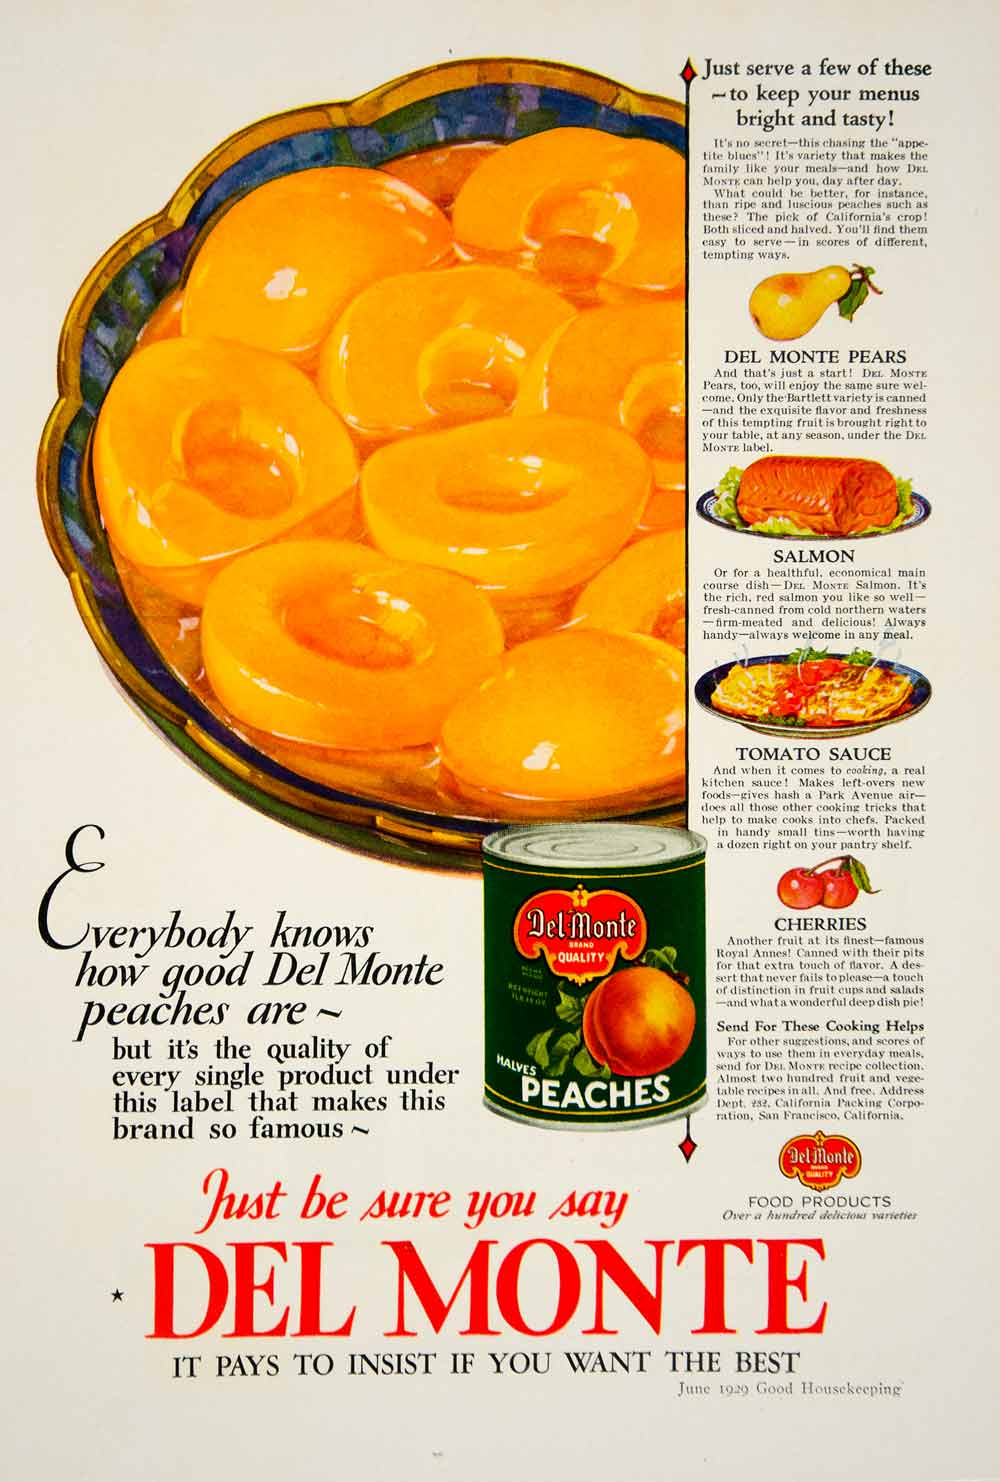 1929 Ad Del Monte Peaches Pears Canned Fruit Cherries Tomato Sauce Dishes YGH2